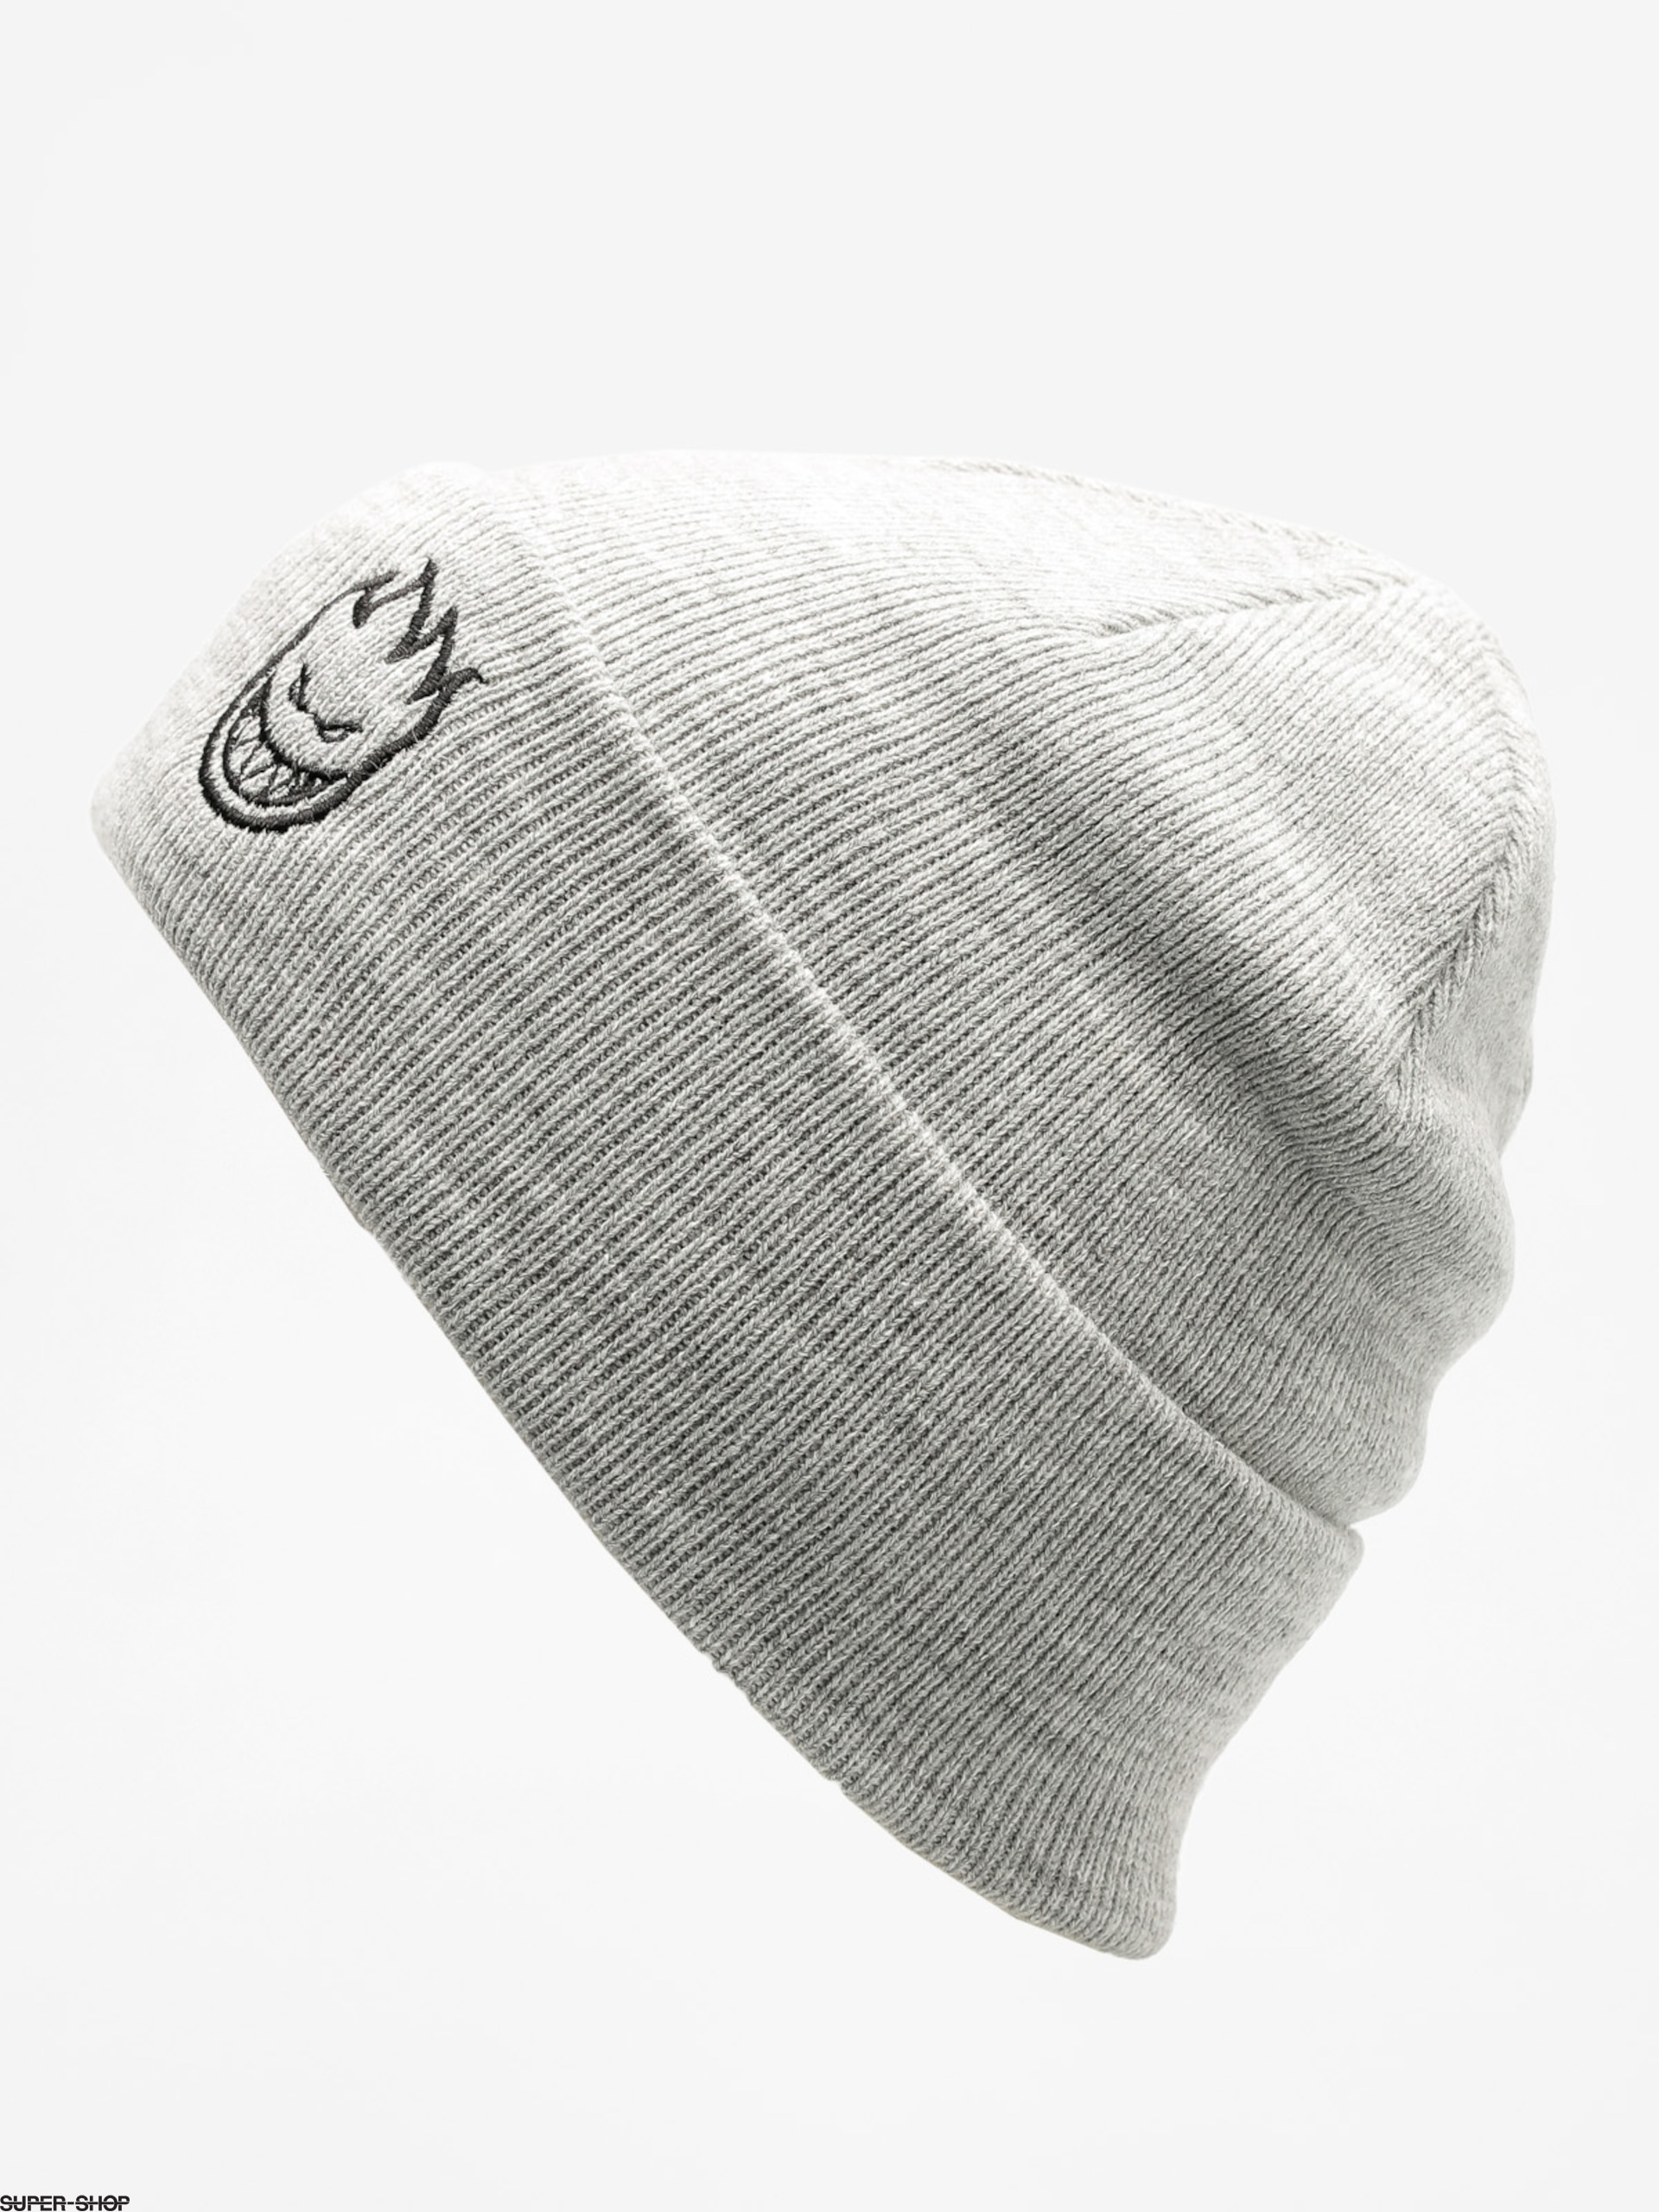 27247afb5 Spitfire Beanie Beanie Big Head Emb (grey/black)